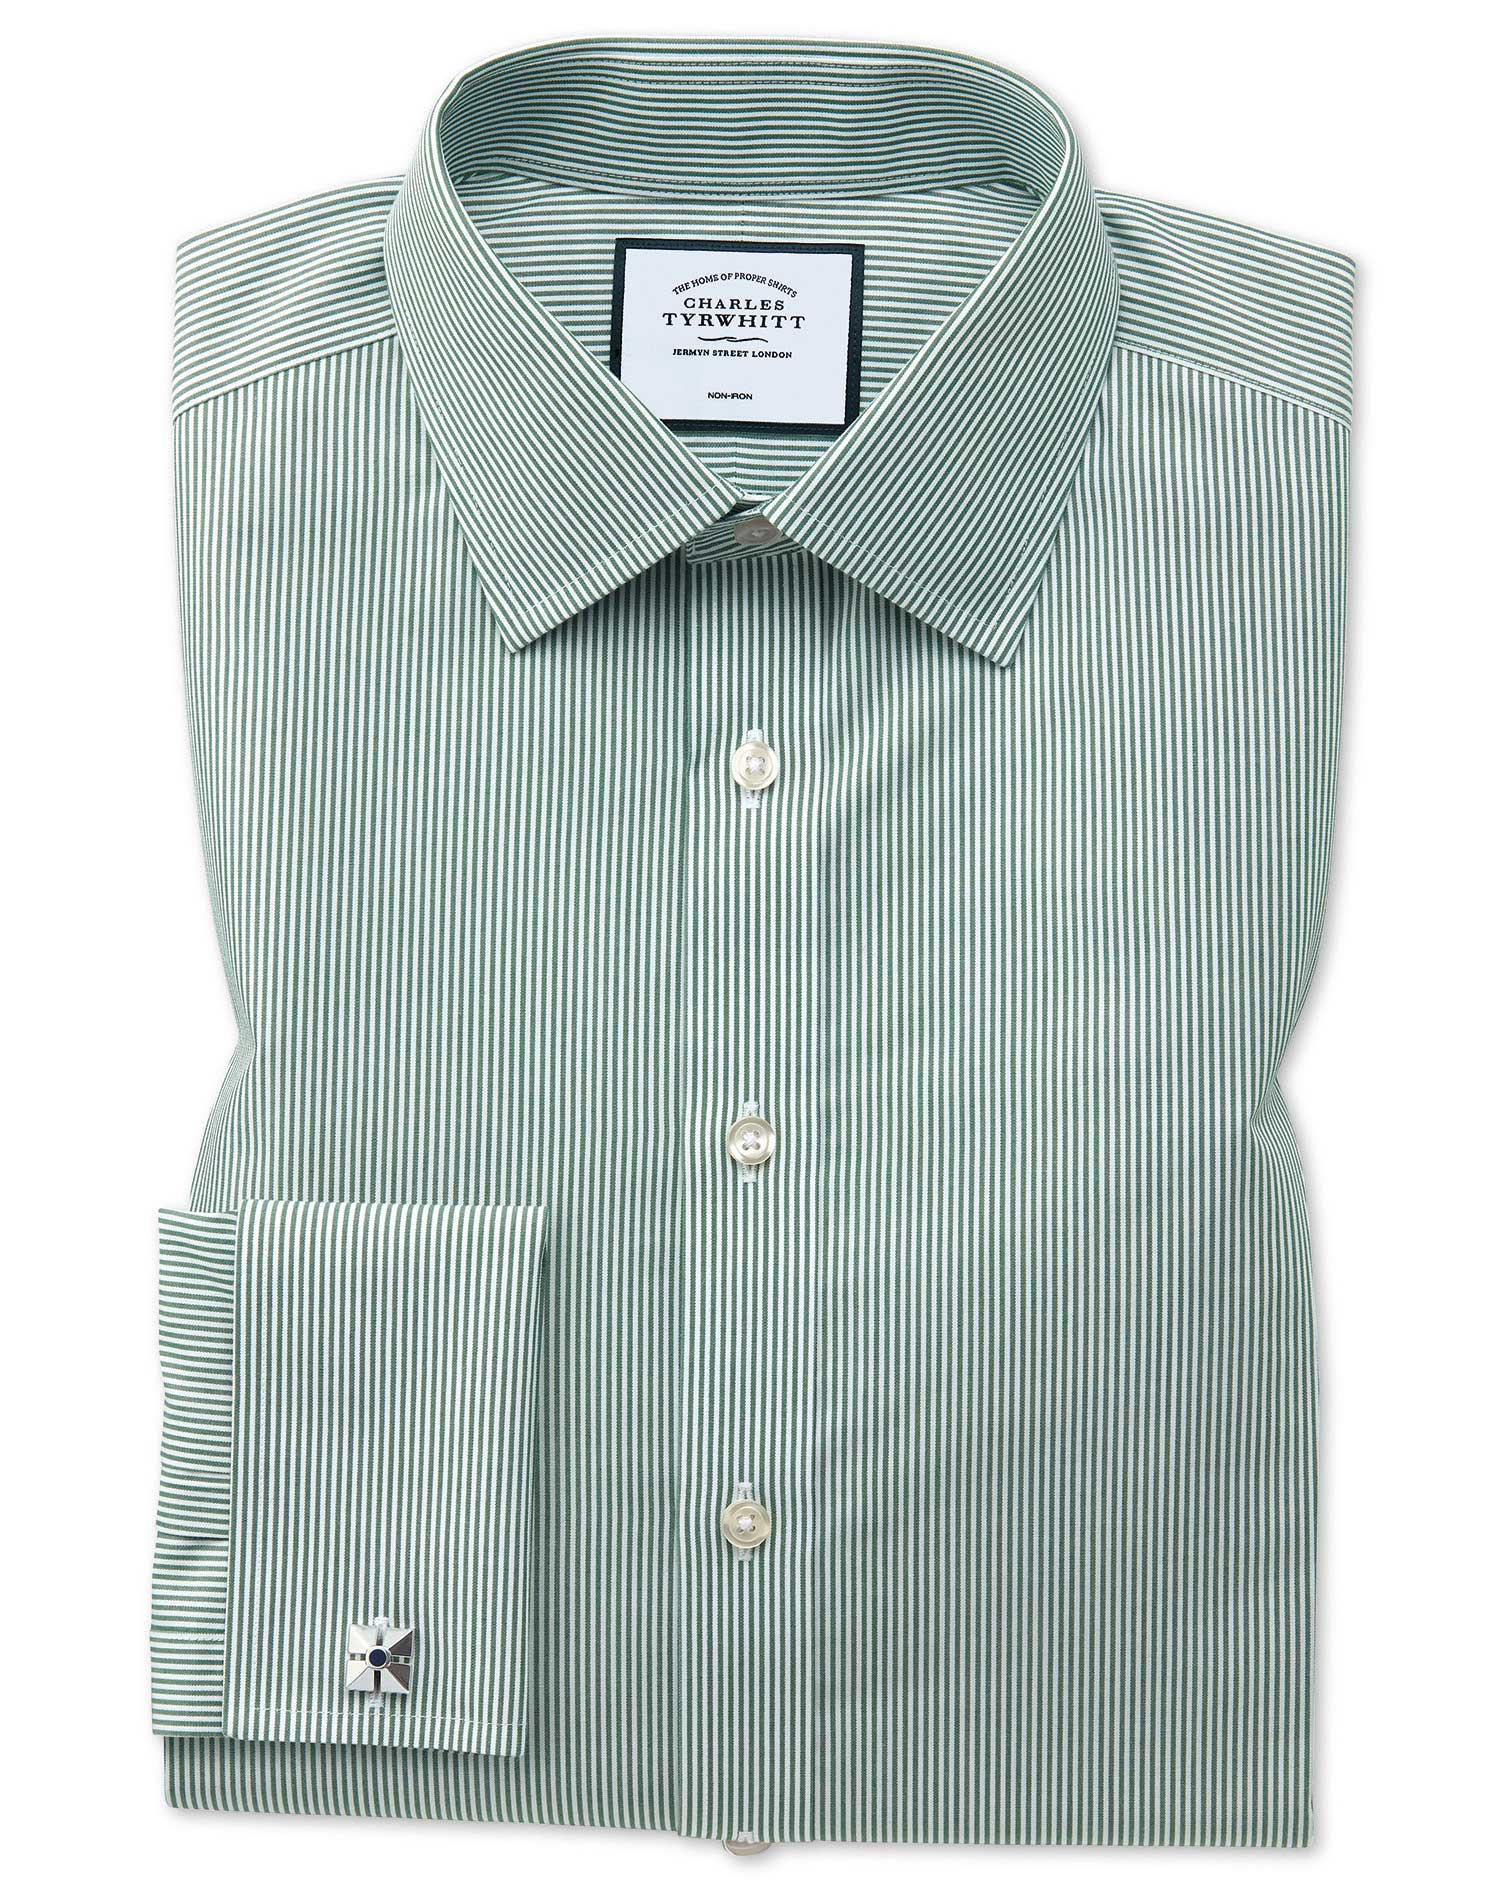 Slim Fit Non-Iron Olive Bengal Stripe Cotton Formal Shirt Double Cuff Size 16/33 by Charles Tyrwhitt